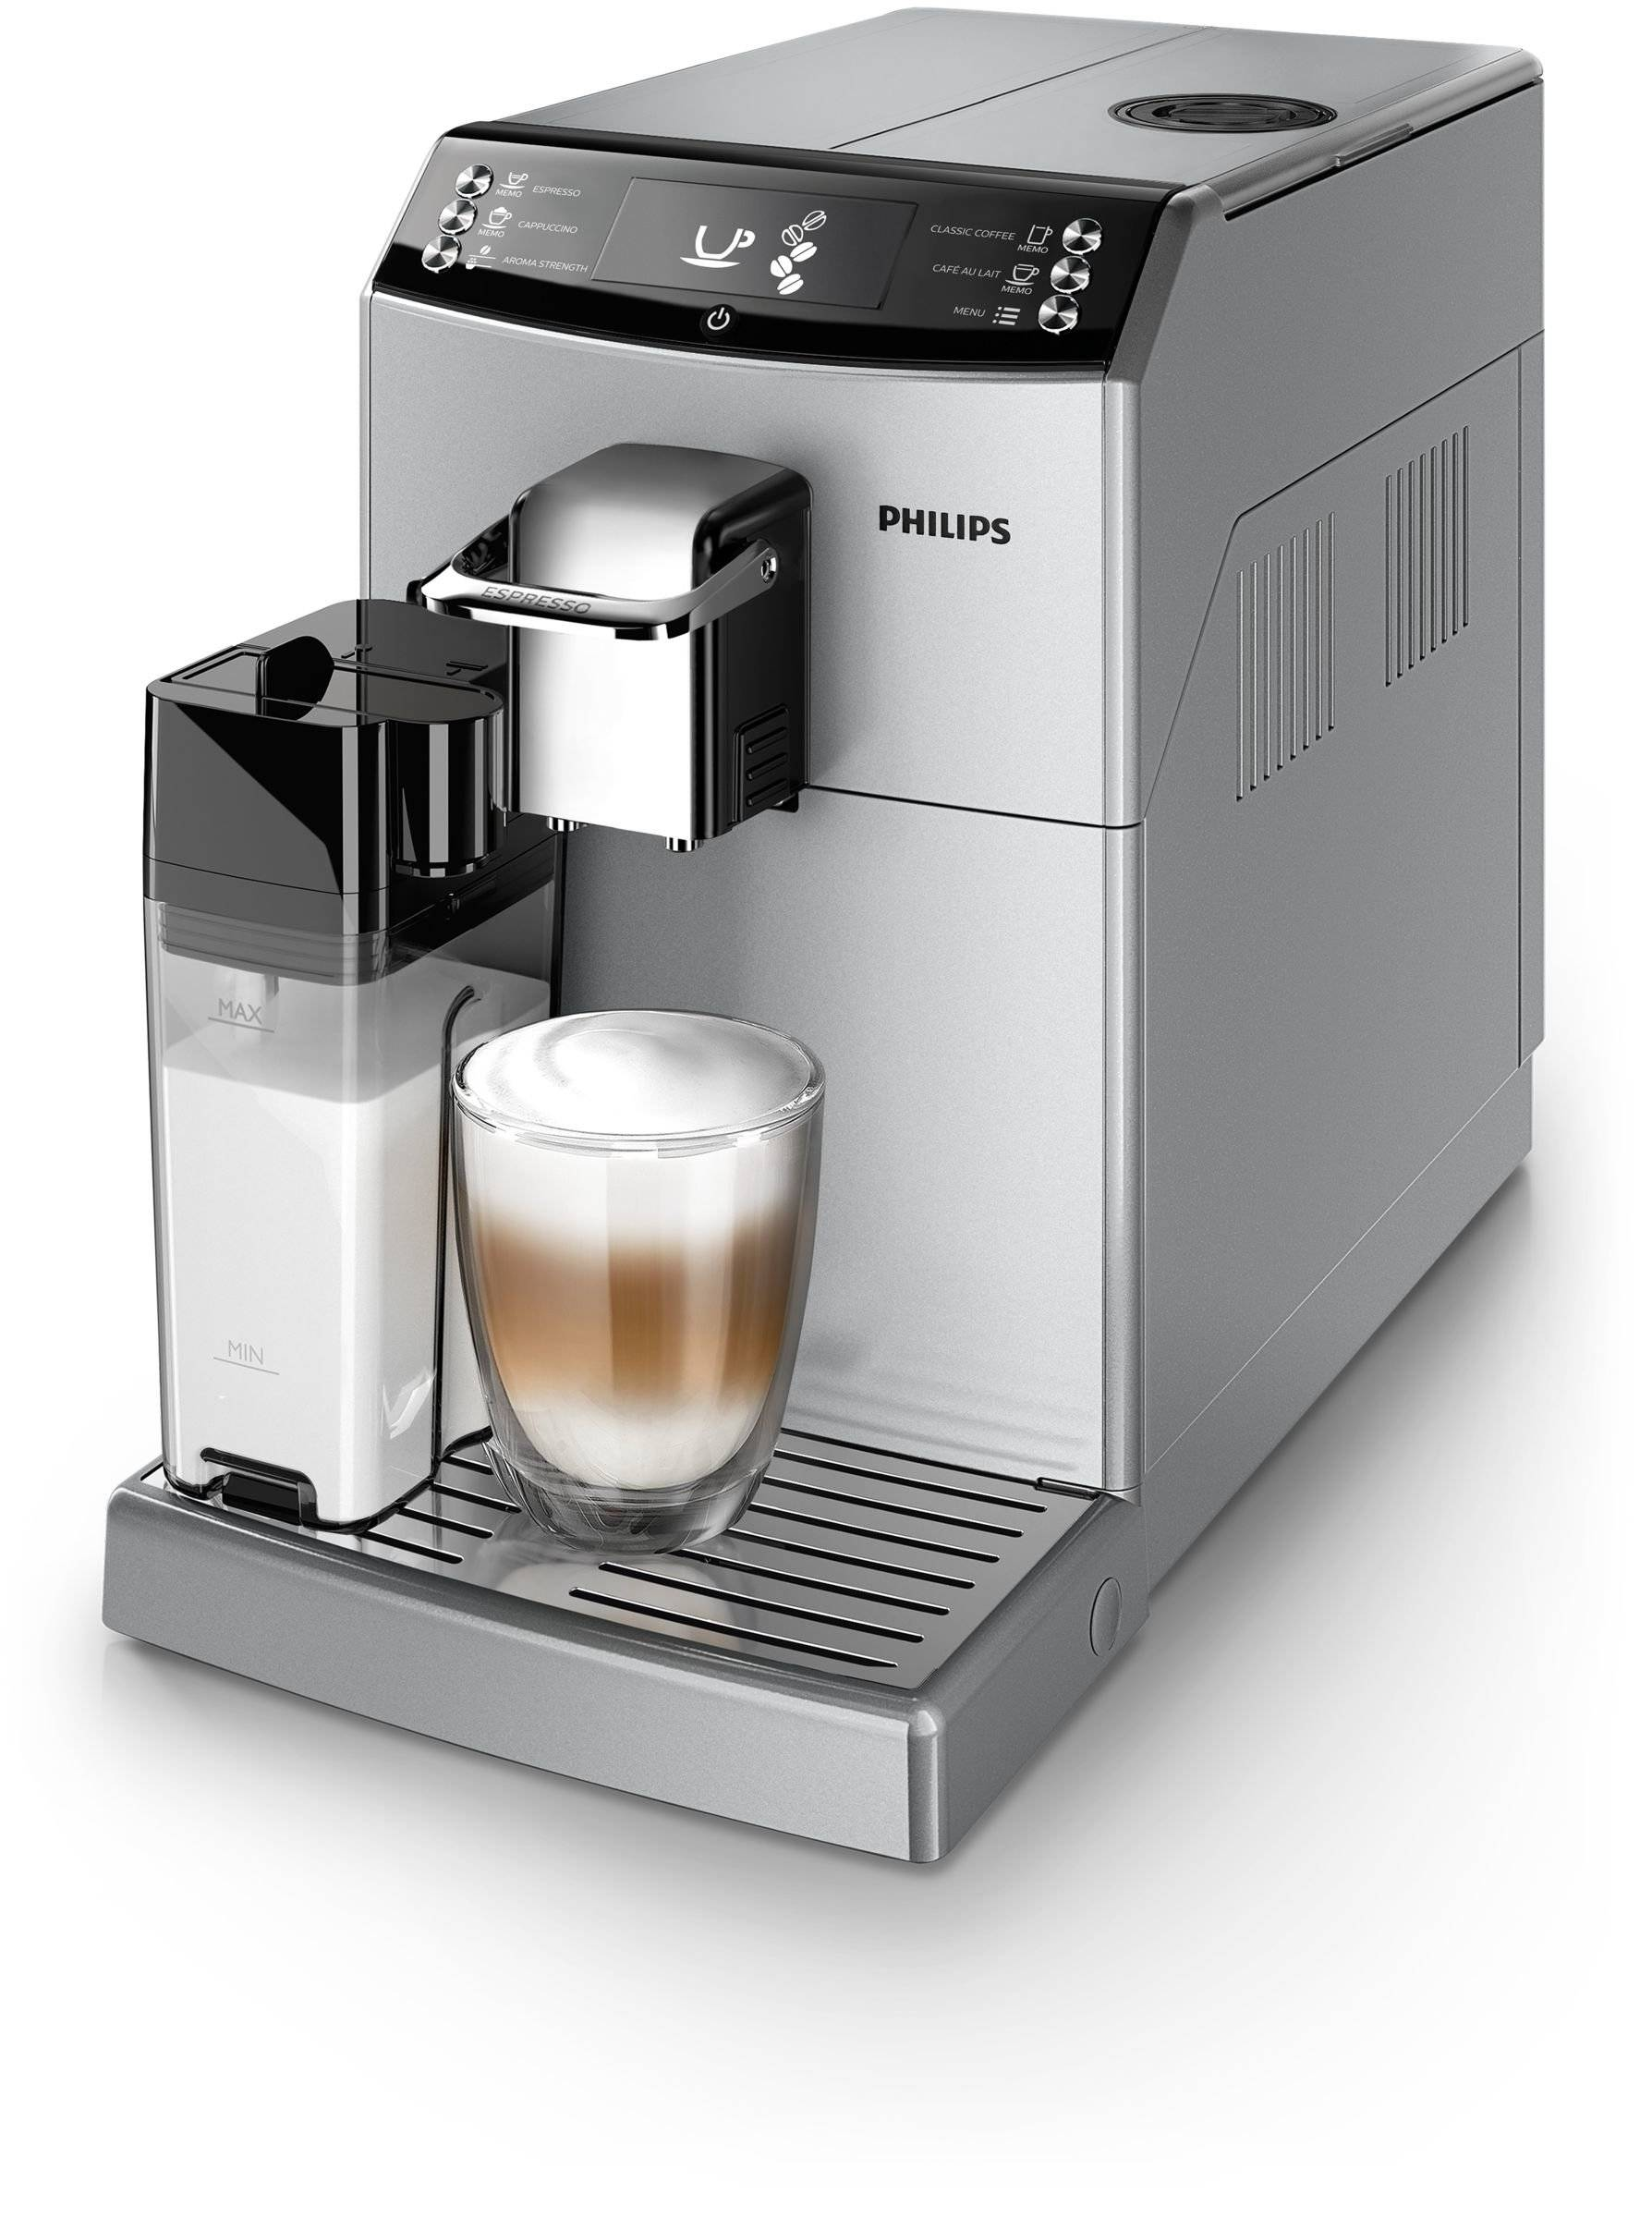 Philips Cafetera Express - Philips 4000 series Cafetera espresso súper automát